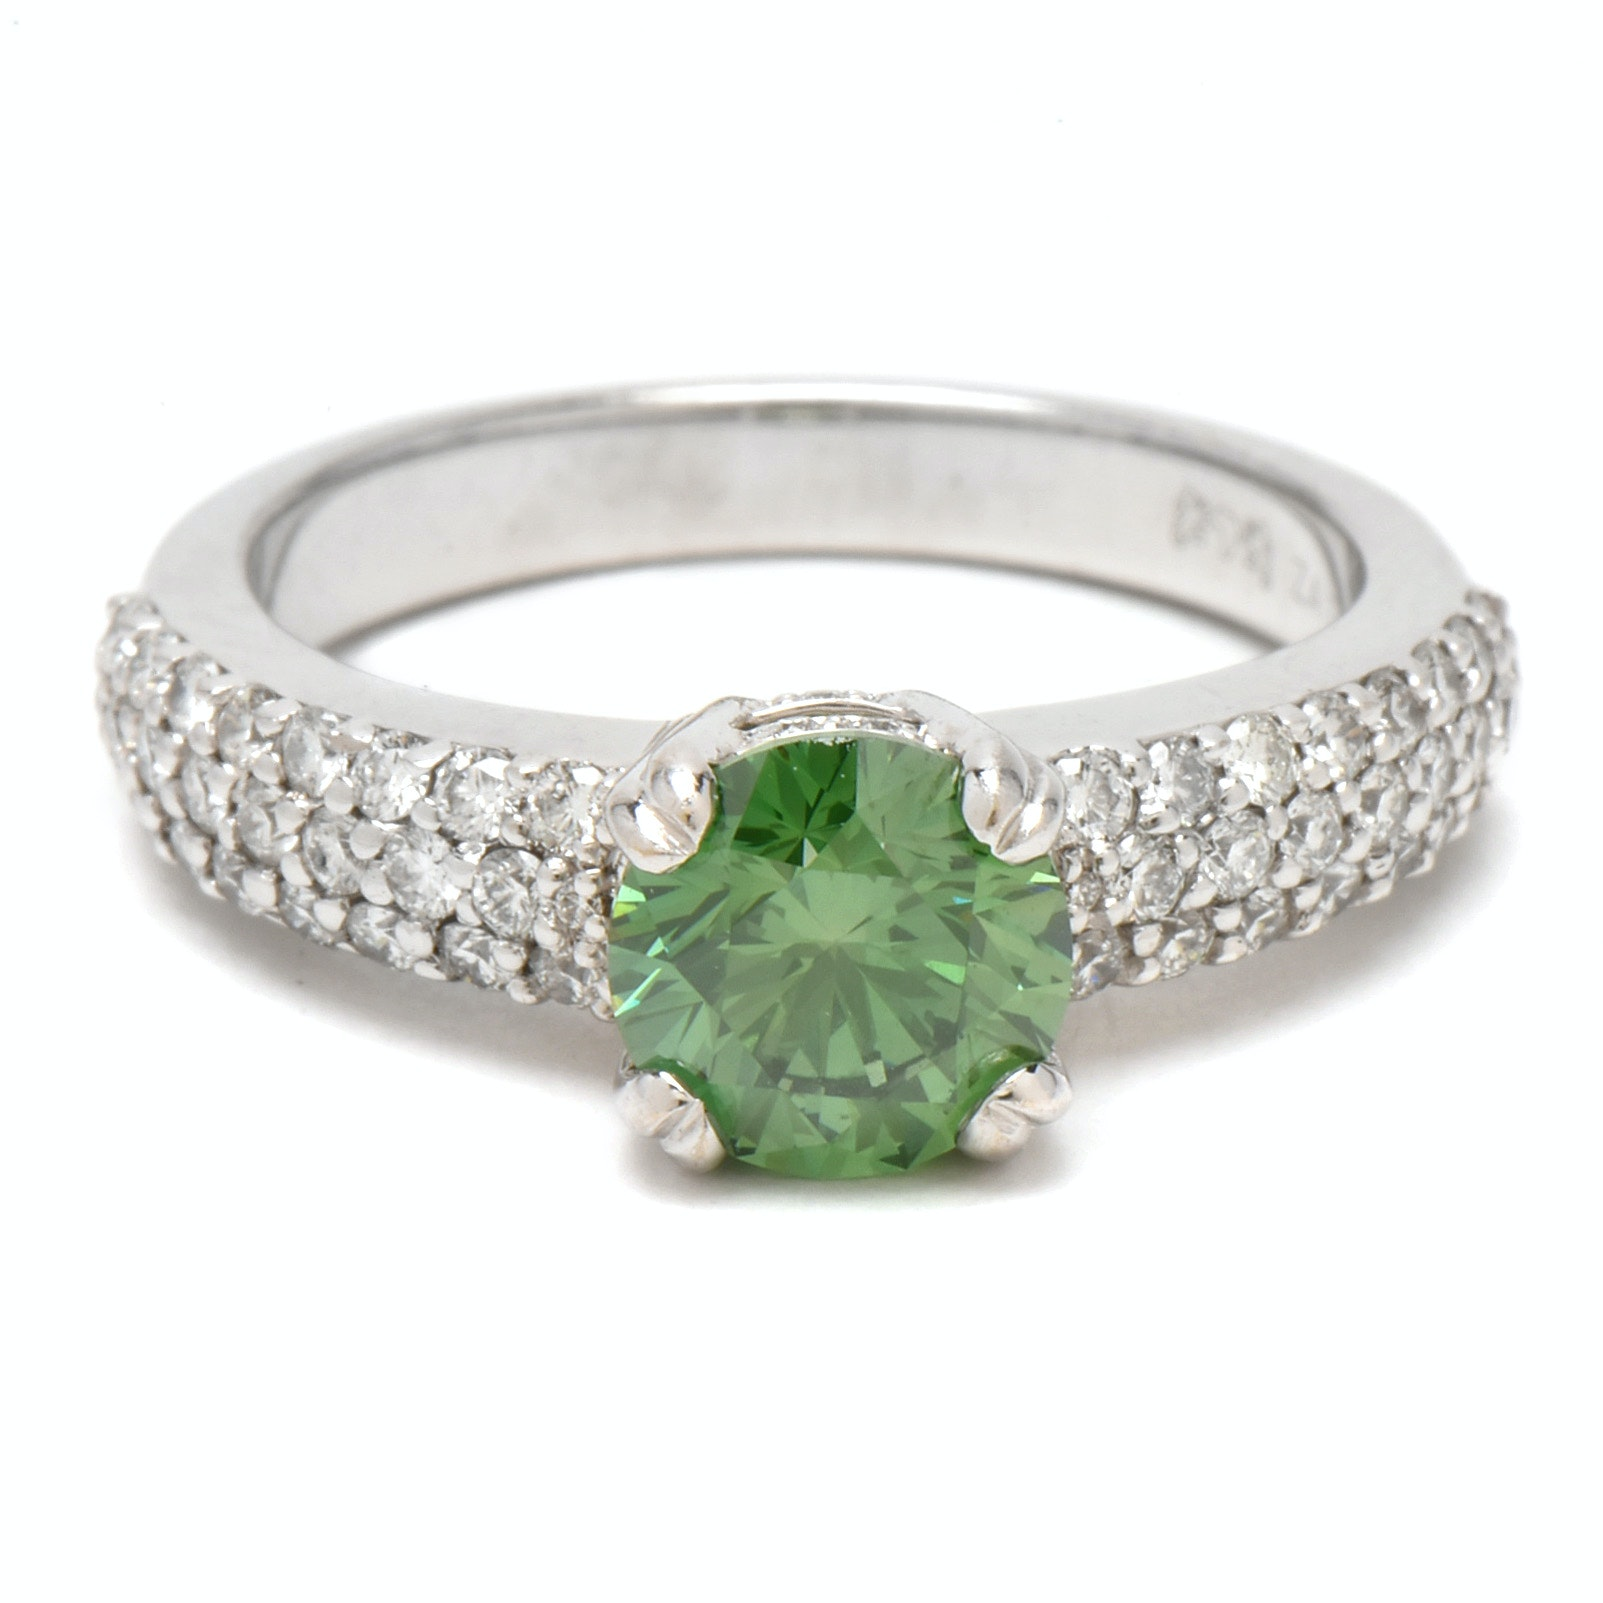 14K White Gold 1.92 CTW Green Color Treated Diamond Ring